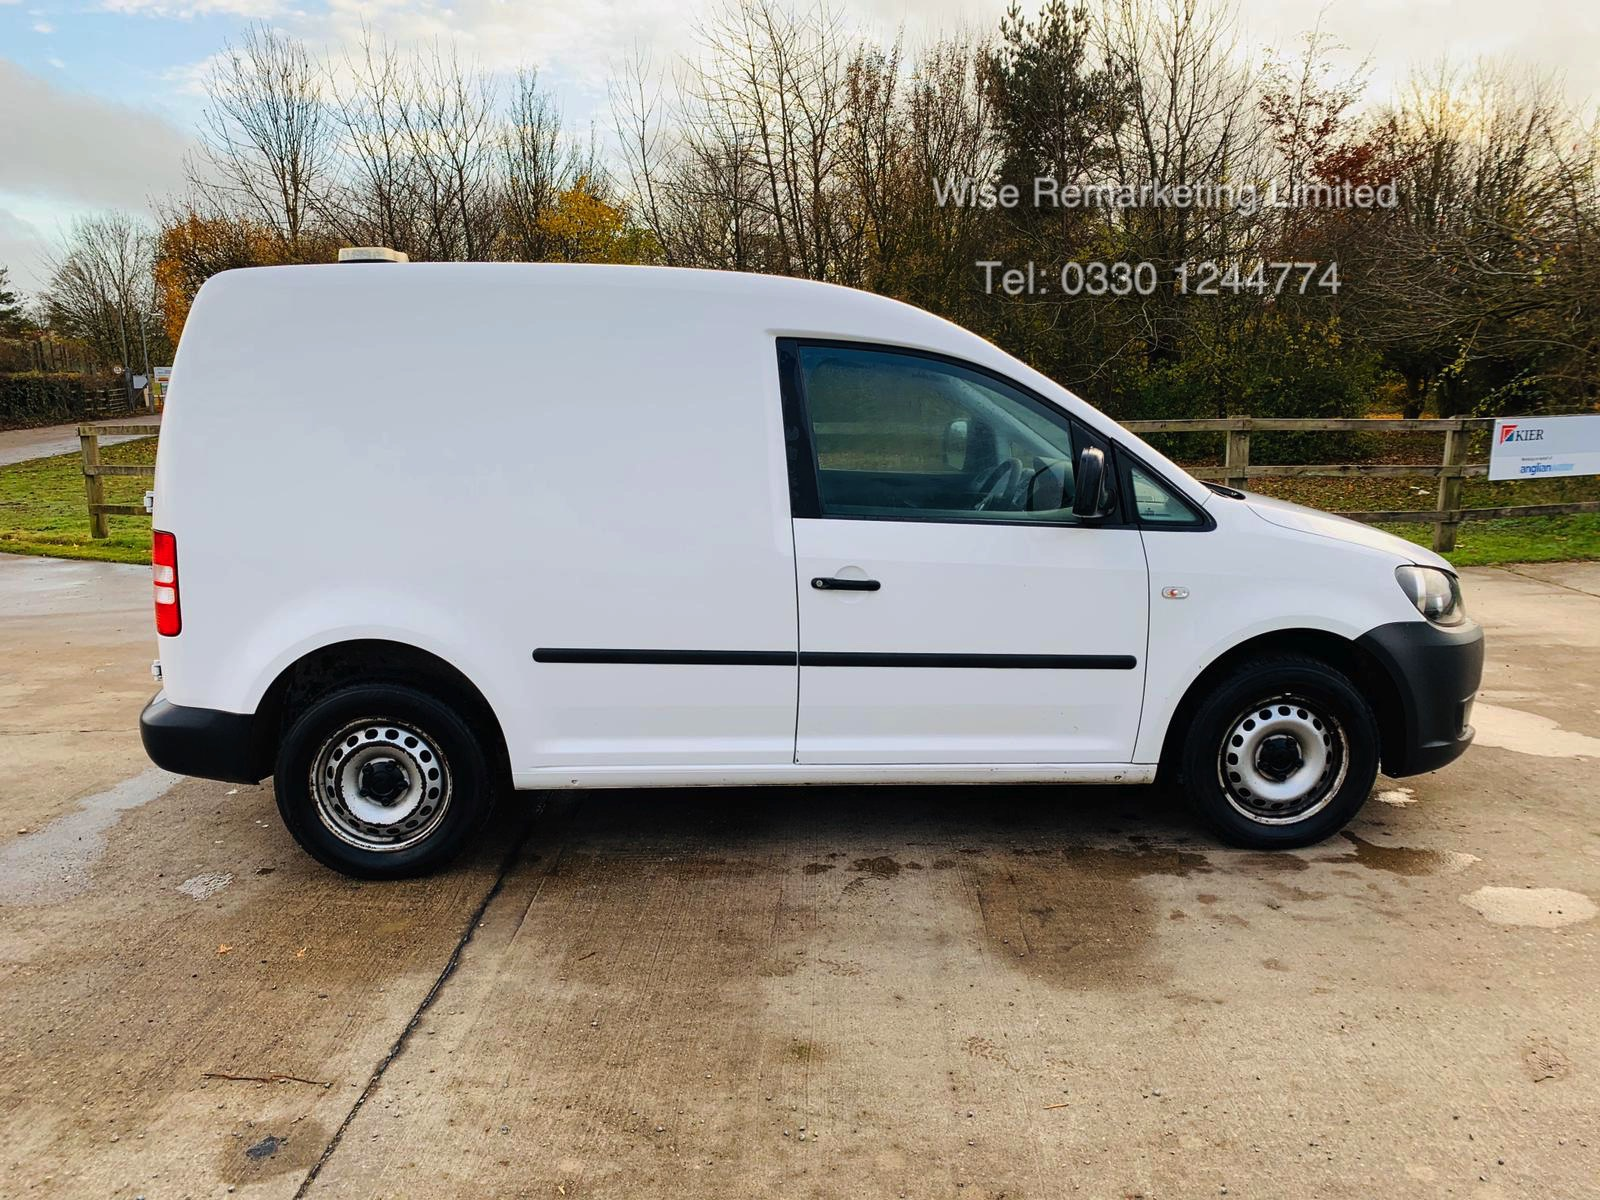 Lot 24 - Volkswagen Caddy C20 1.6 TDI - 2012 Model - 1 Keeper From New - Side Loading Door - Ply Lined